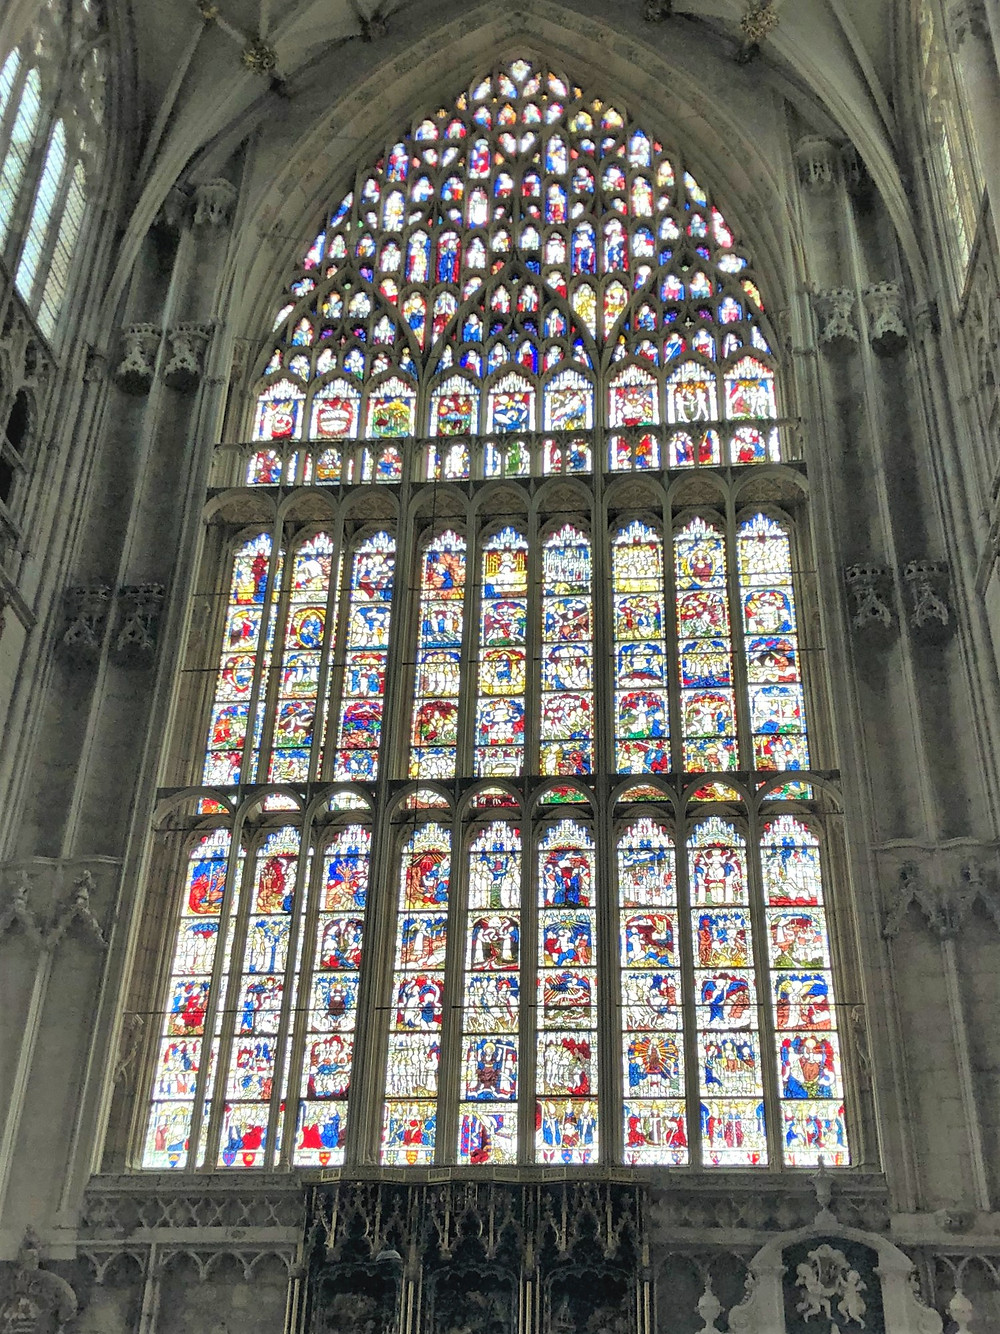 Historians consider the East Window one of the great artistic achievements of the Middle Ages.